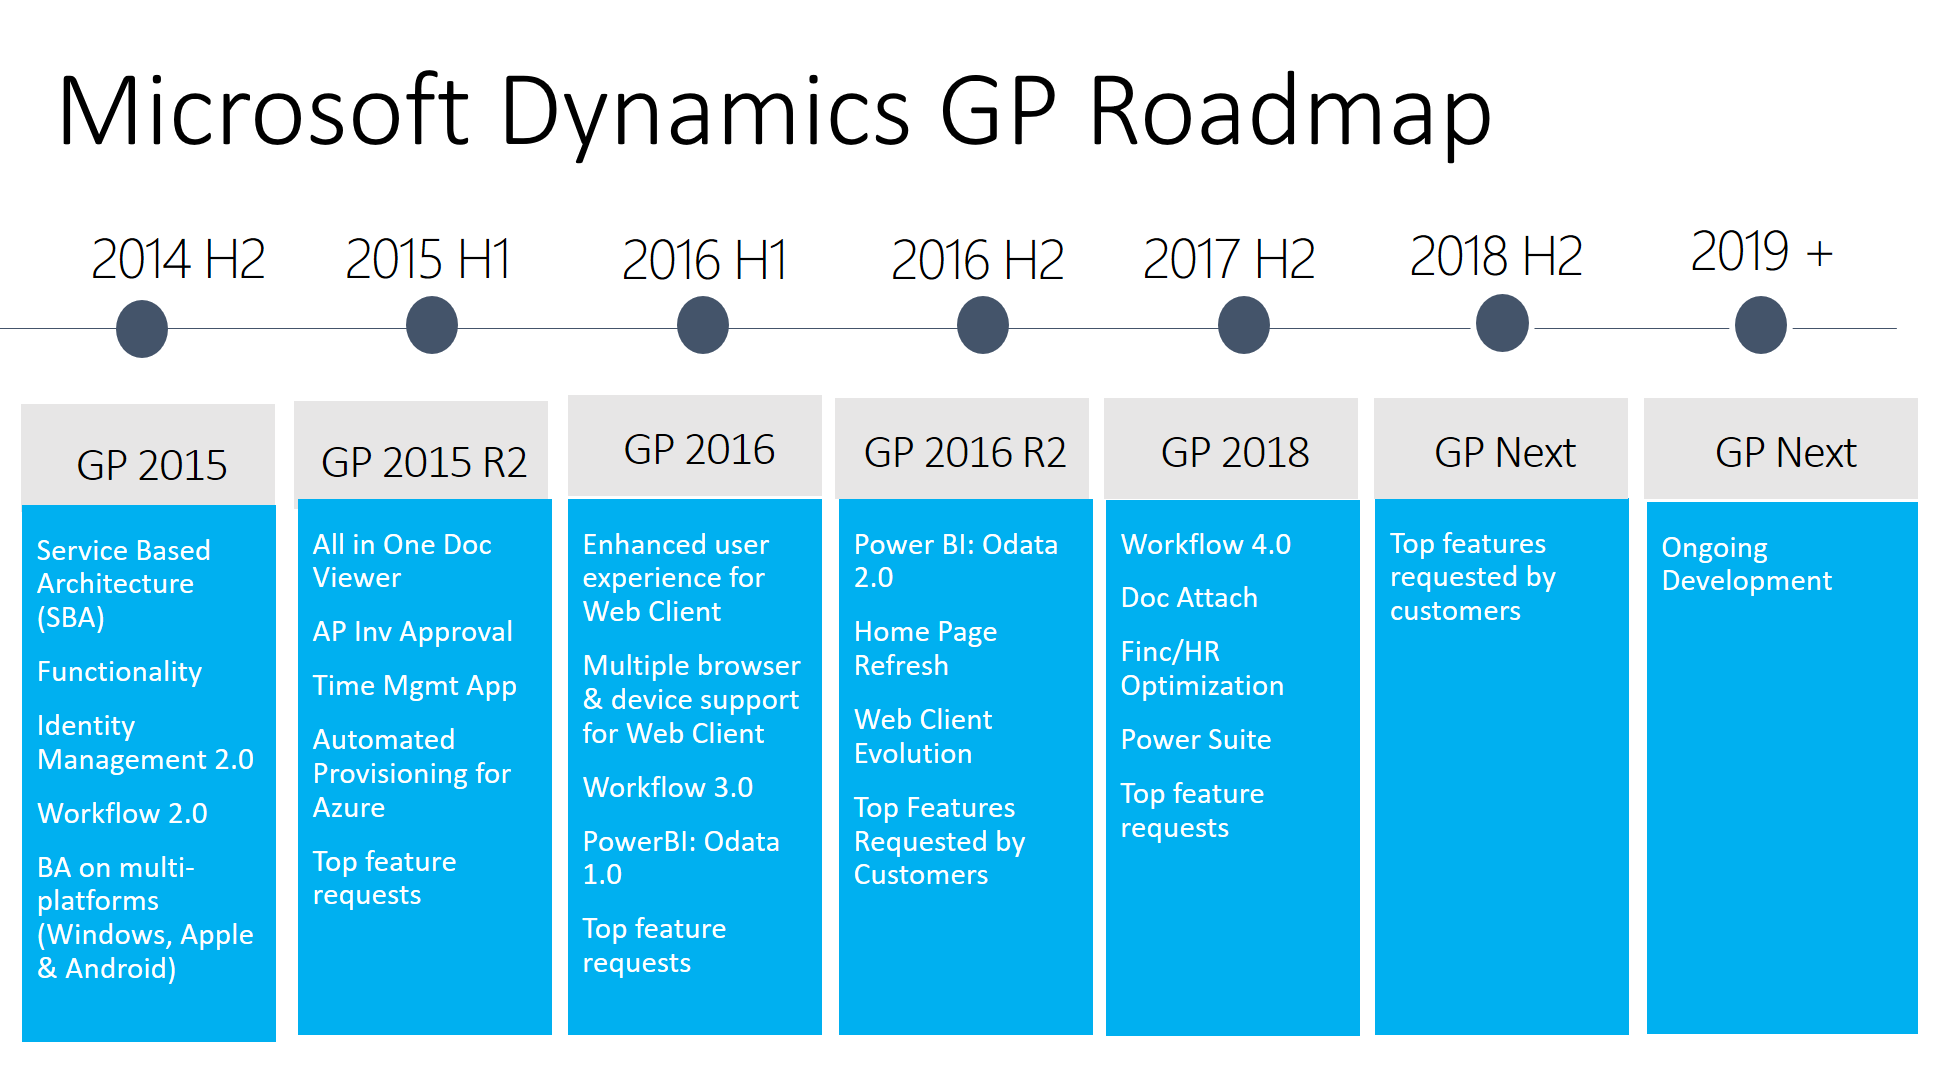 Microsoft Dynamics GP Roadmap 2017-2019